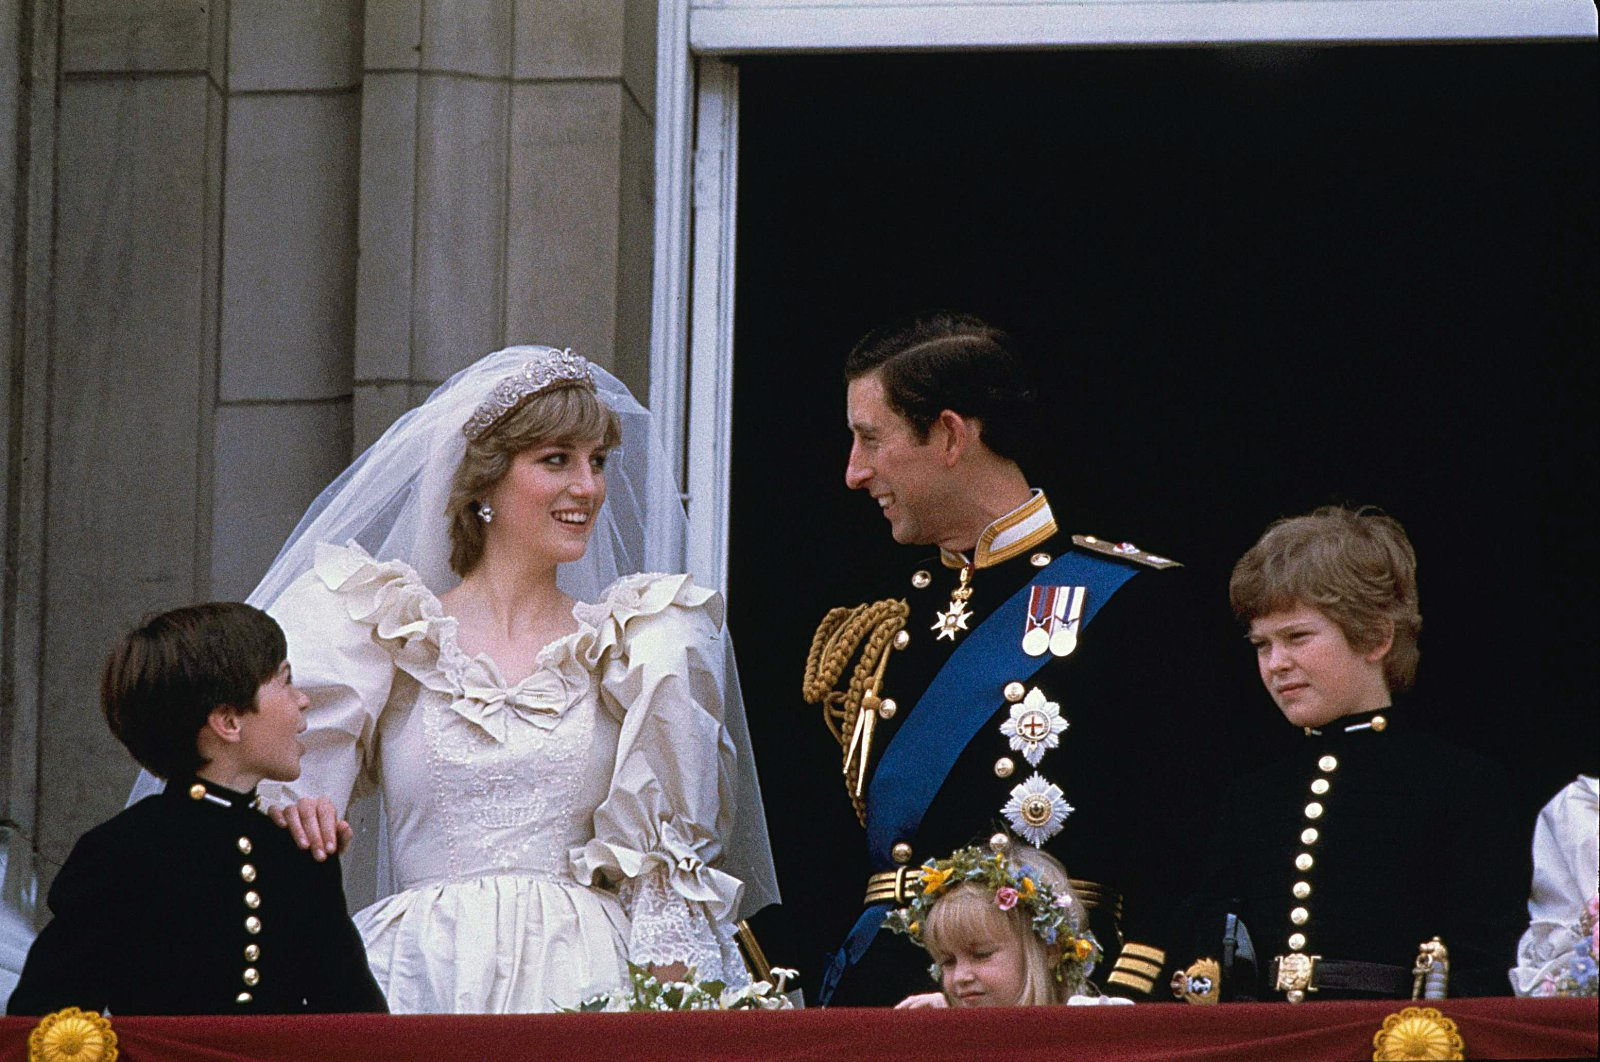 Prince Charles (R) and his bride Diana, Princess of Wales, are shown on their wedding day on the balcony of Buckingham Palace in London, July 29, 1981. ( AP Photo)